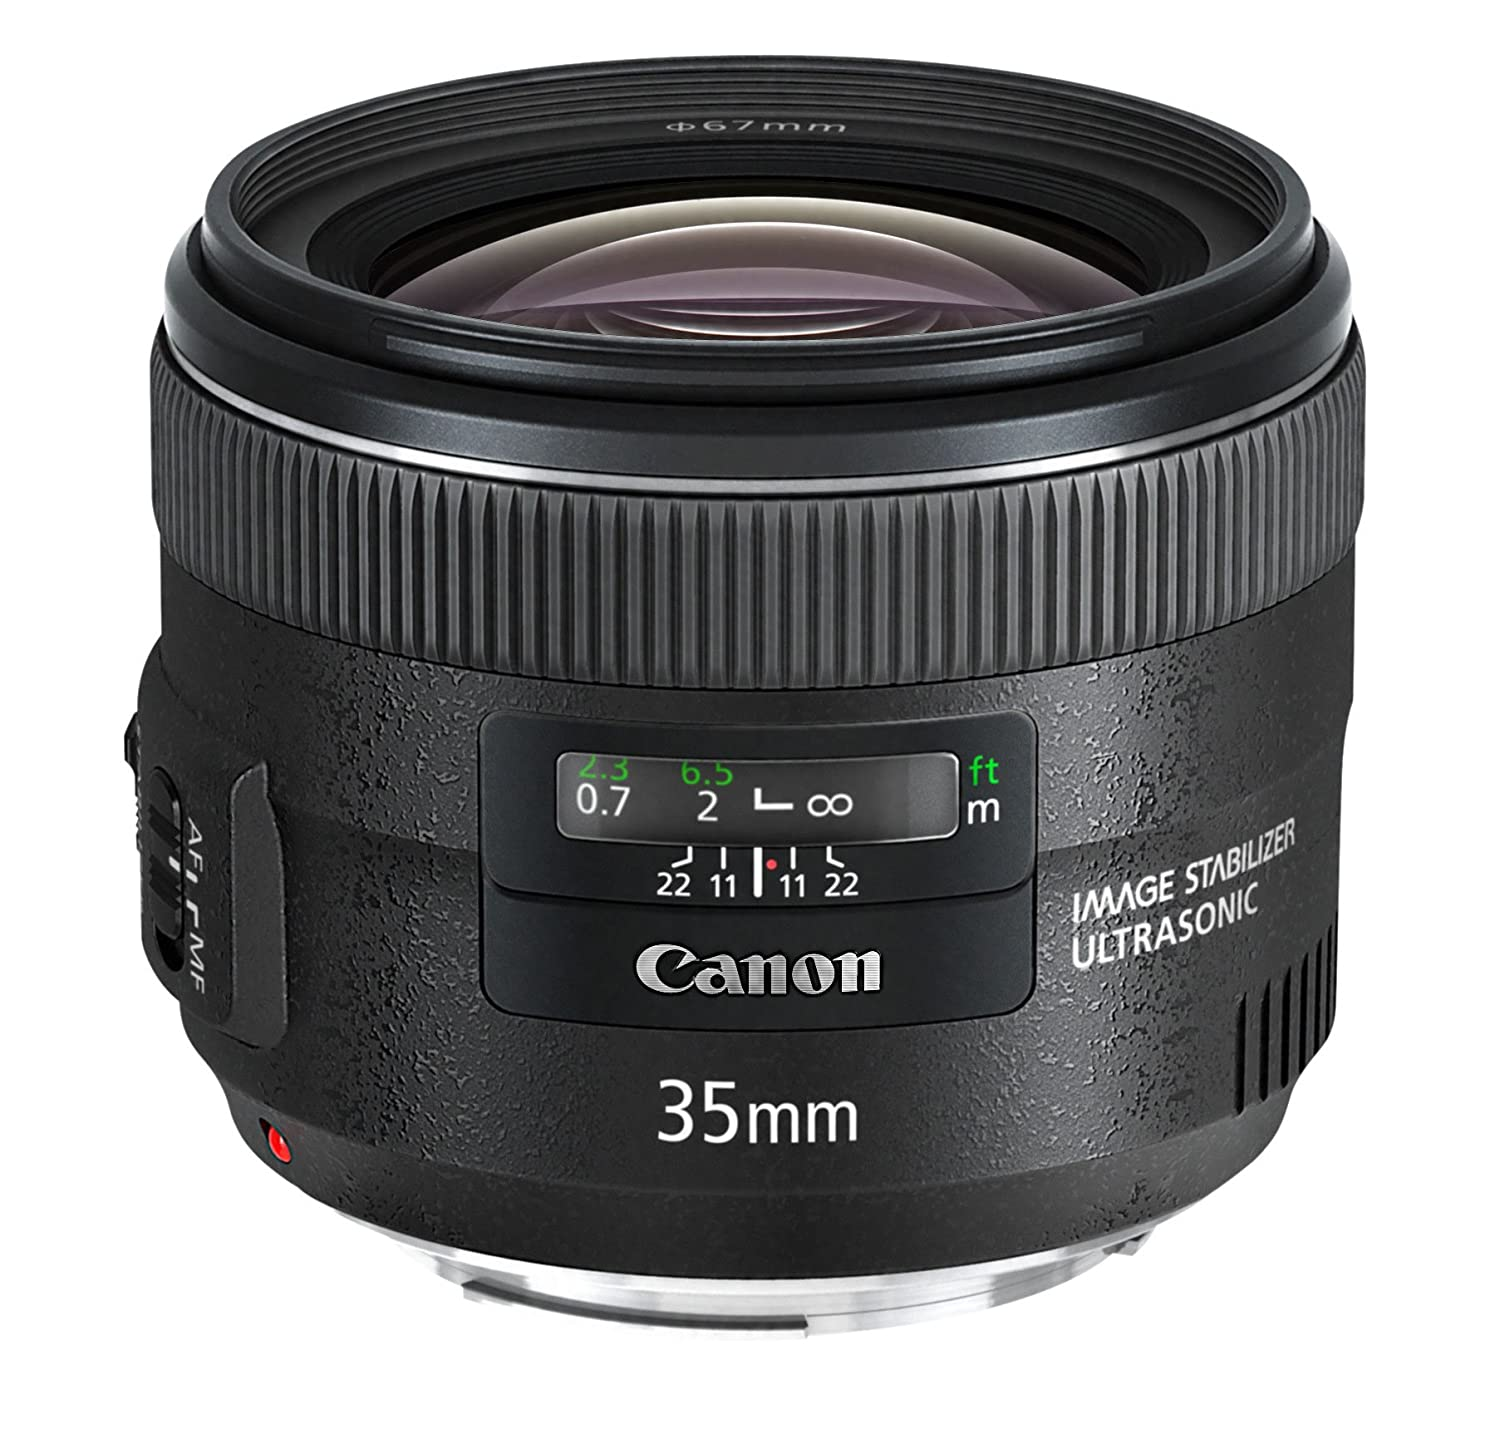 Canon EF mm f IS USM Objetivo para canon distancia focal fija